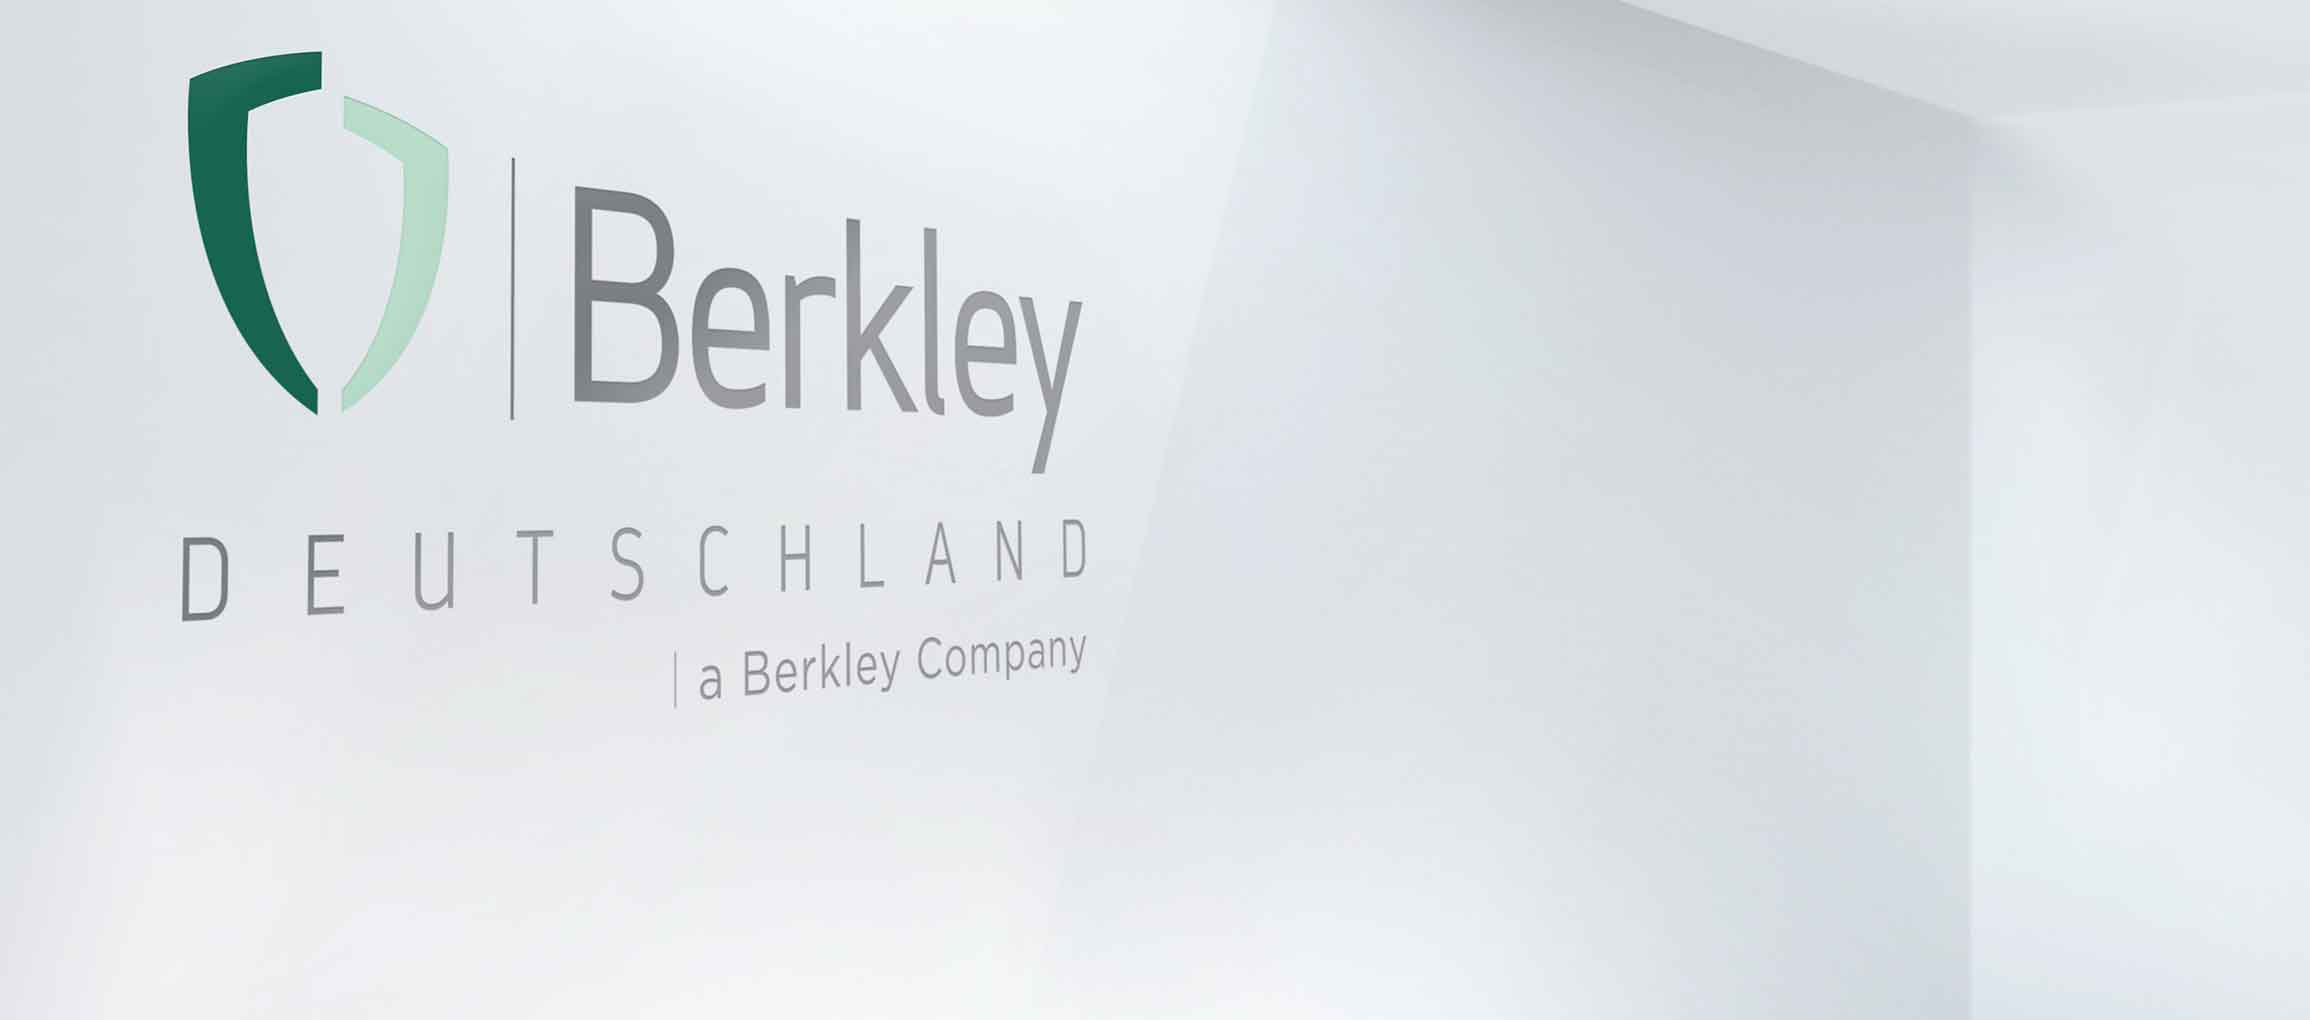 W. R. Berkley Europe: Corporate Design Relaunch